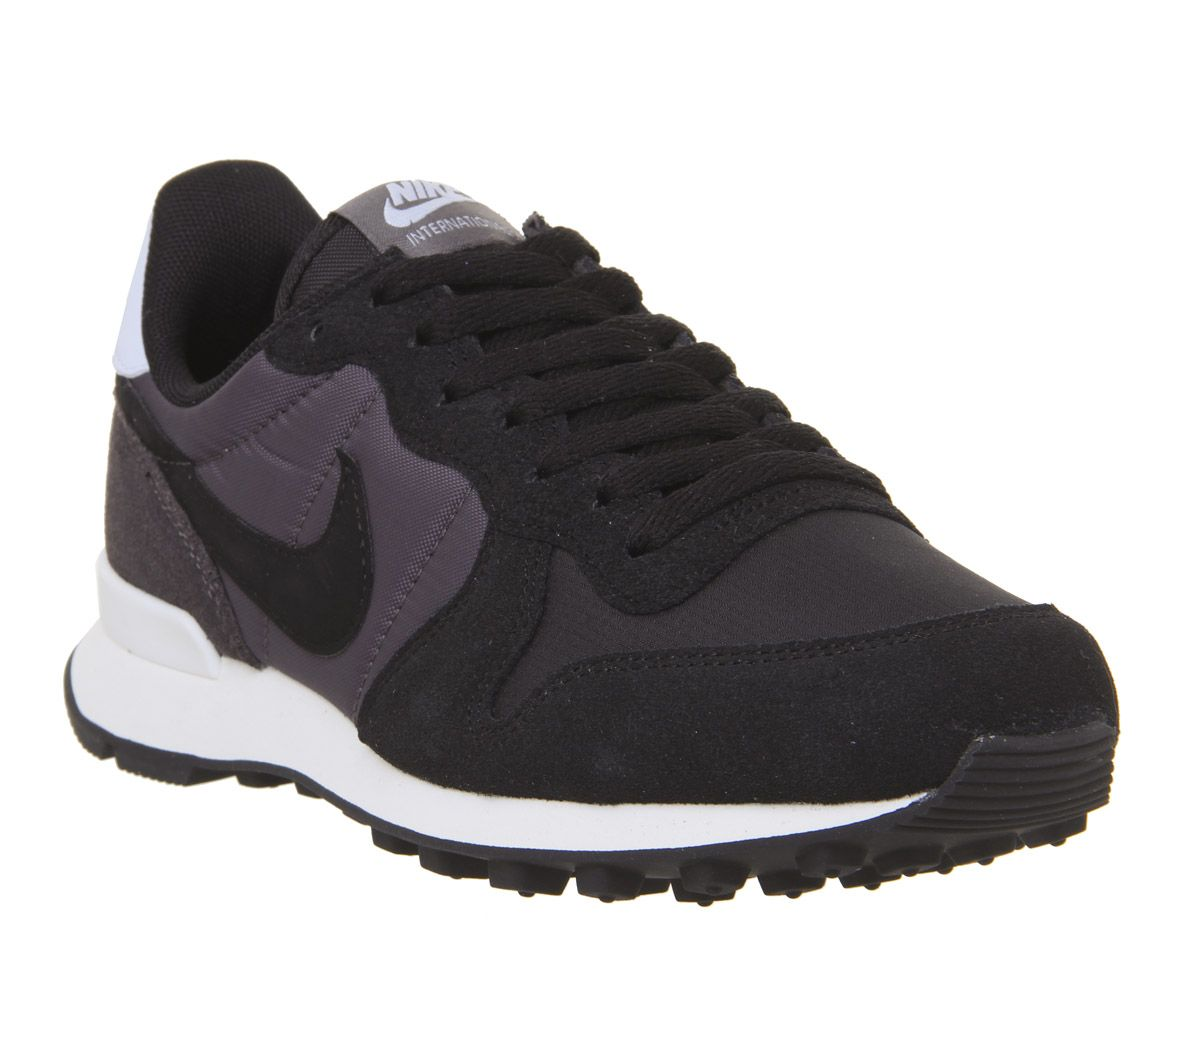 promo code a9039 e6ba5 Nike Nike Internationalist Trainers Black Thunder Grey Half Blue ...